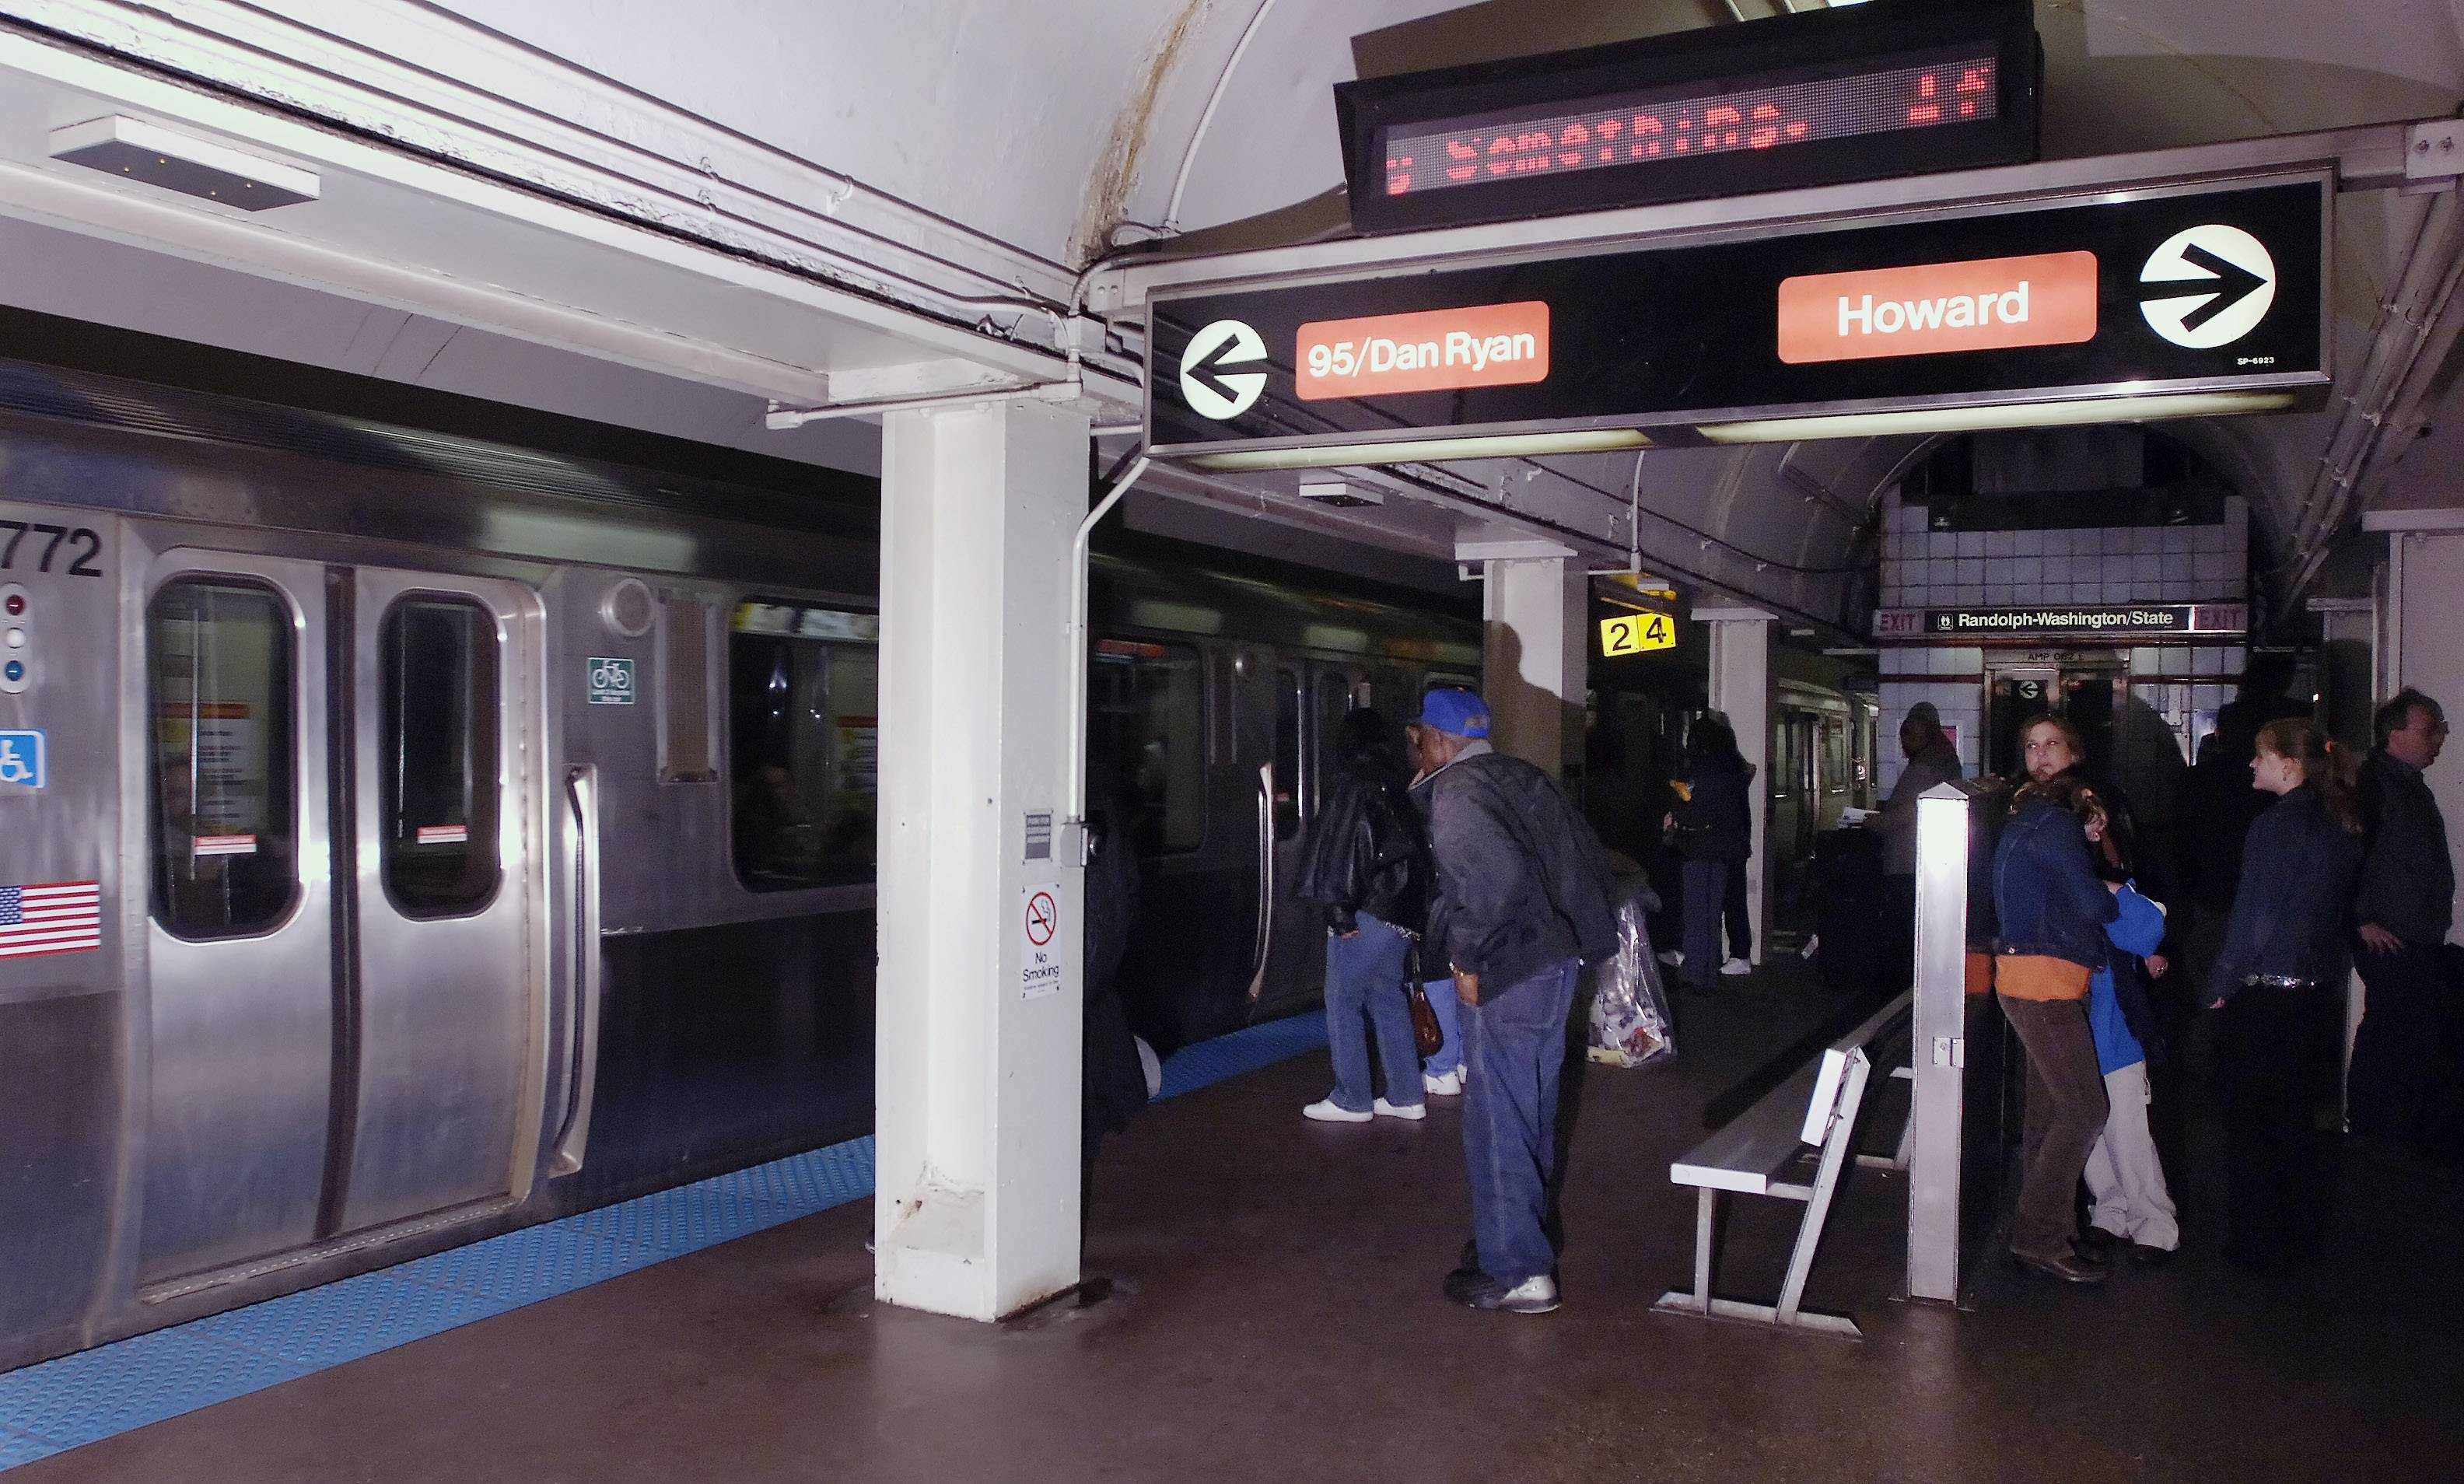 Chicago plans to upgrade wireless service to 4G in its subways and other underground transit facilities. Much of Chicago's commuter train network is elevated above street level, but more than 11 miles of the system is underground.